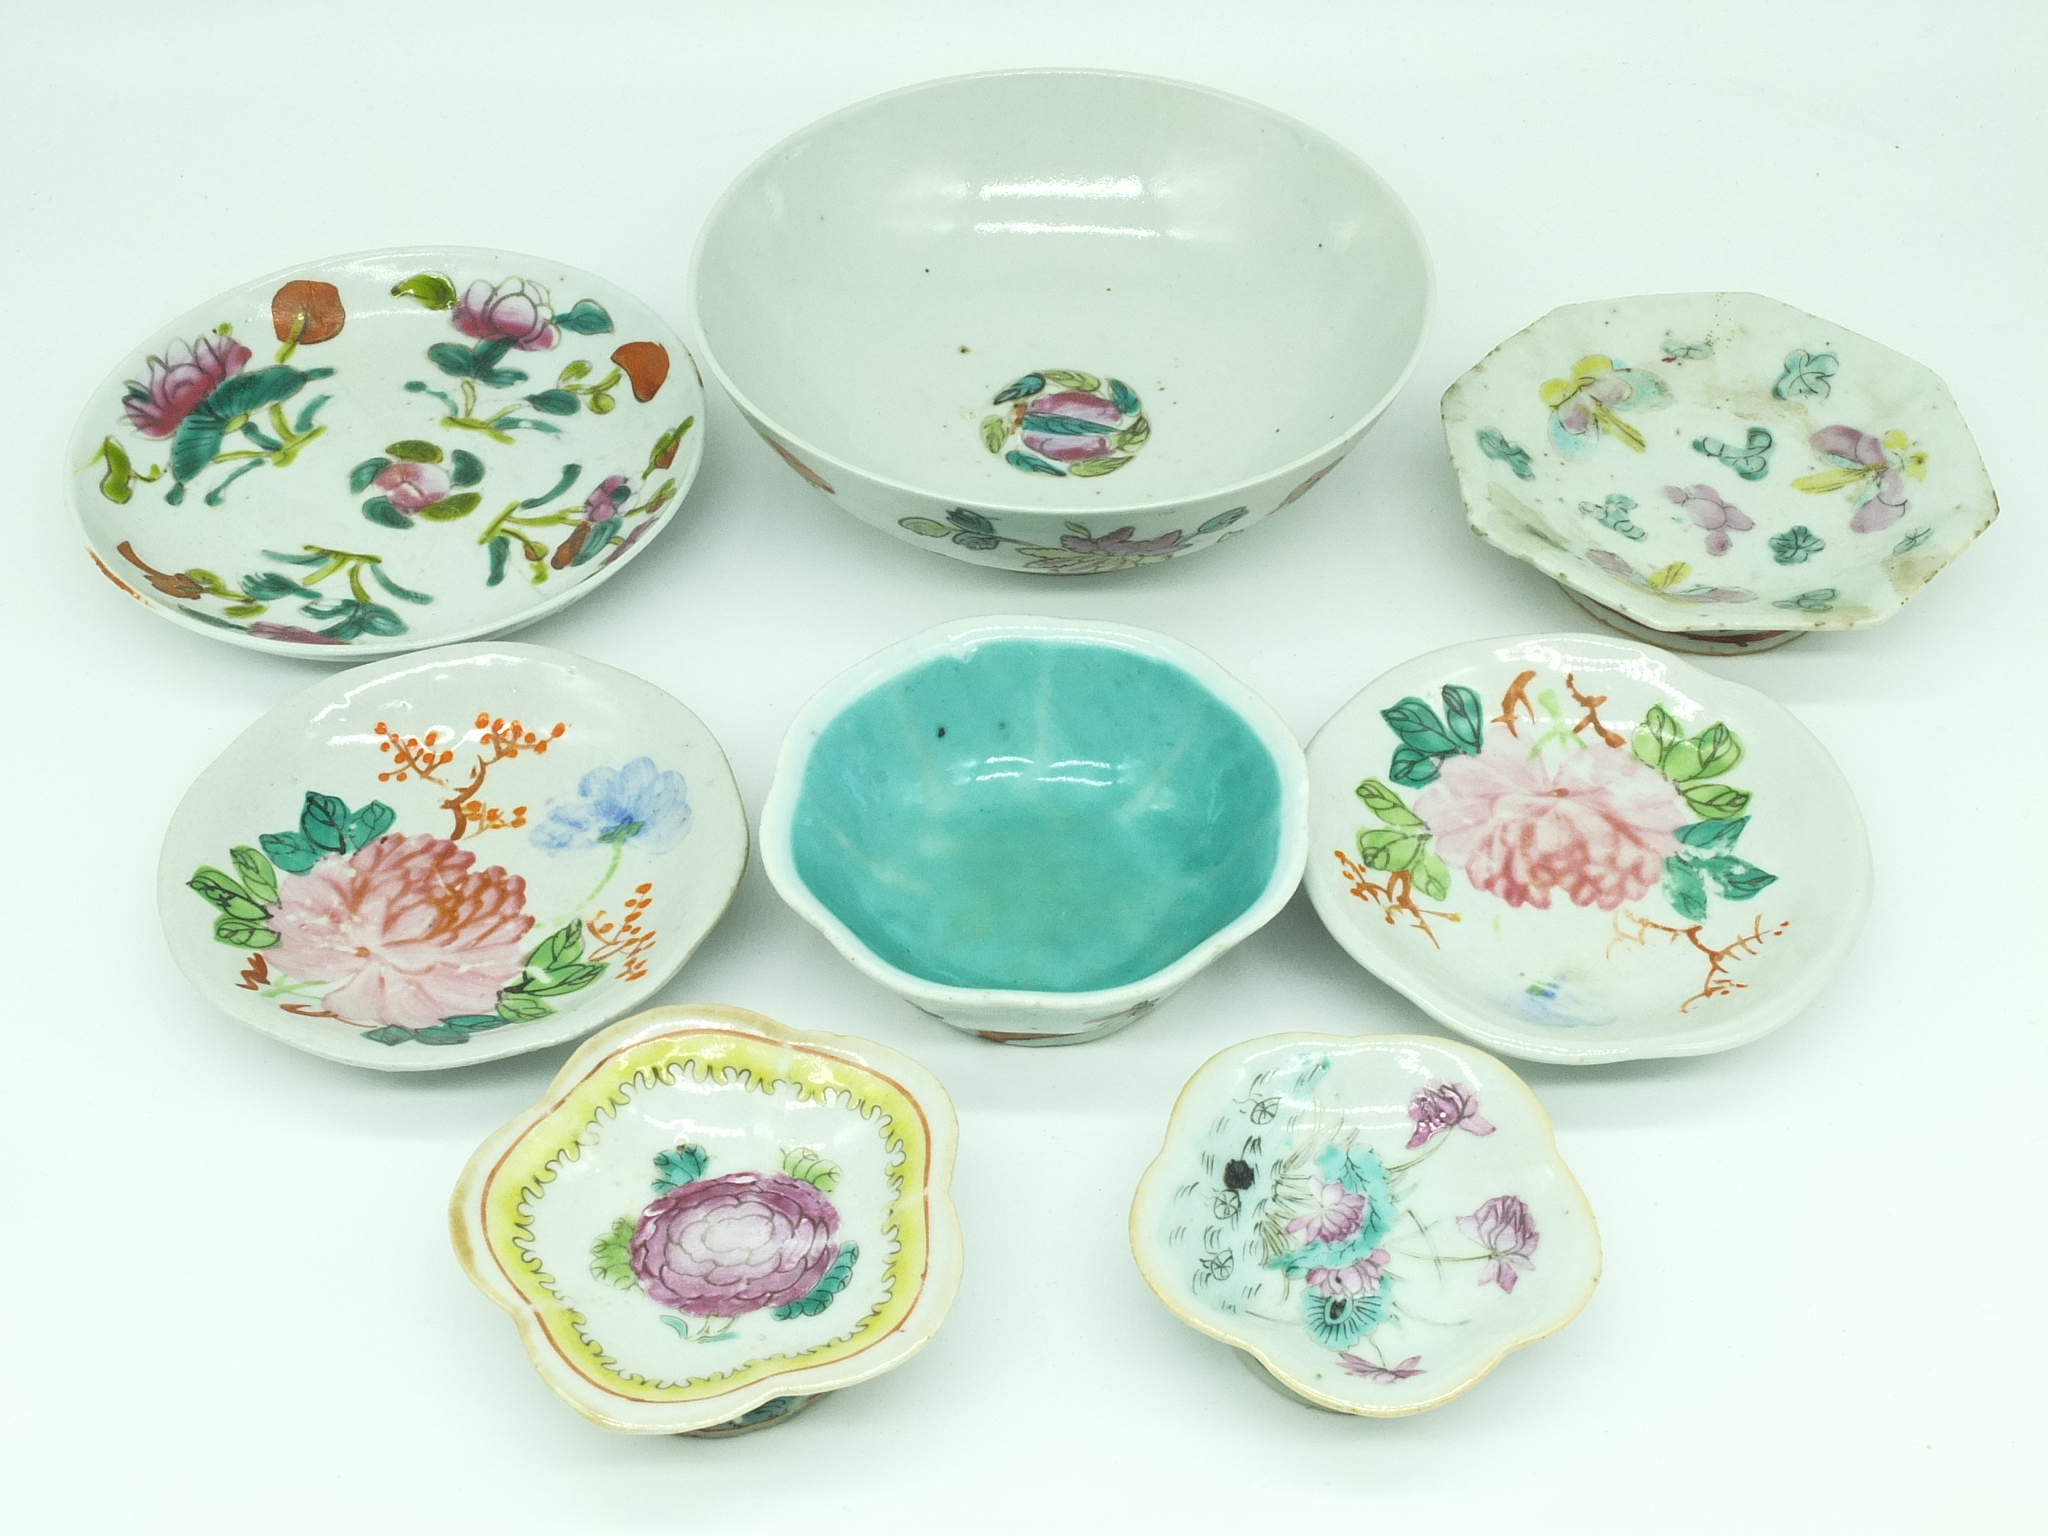 'Various Chinese Enamelled Porcelain Bowls and Dishes Mostly Late Qing'